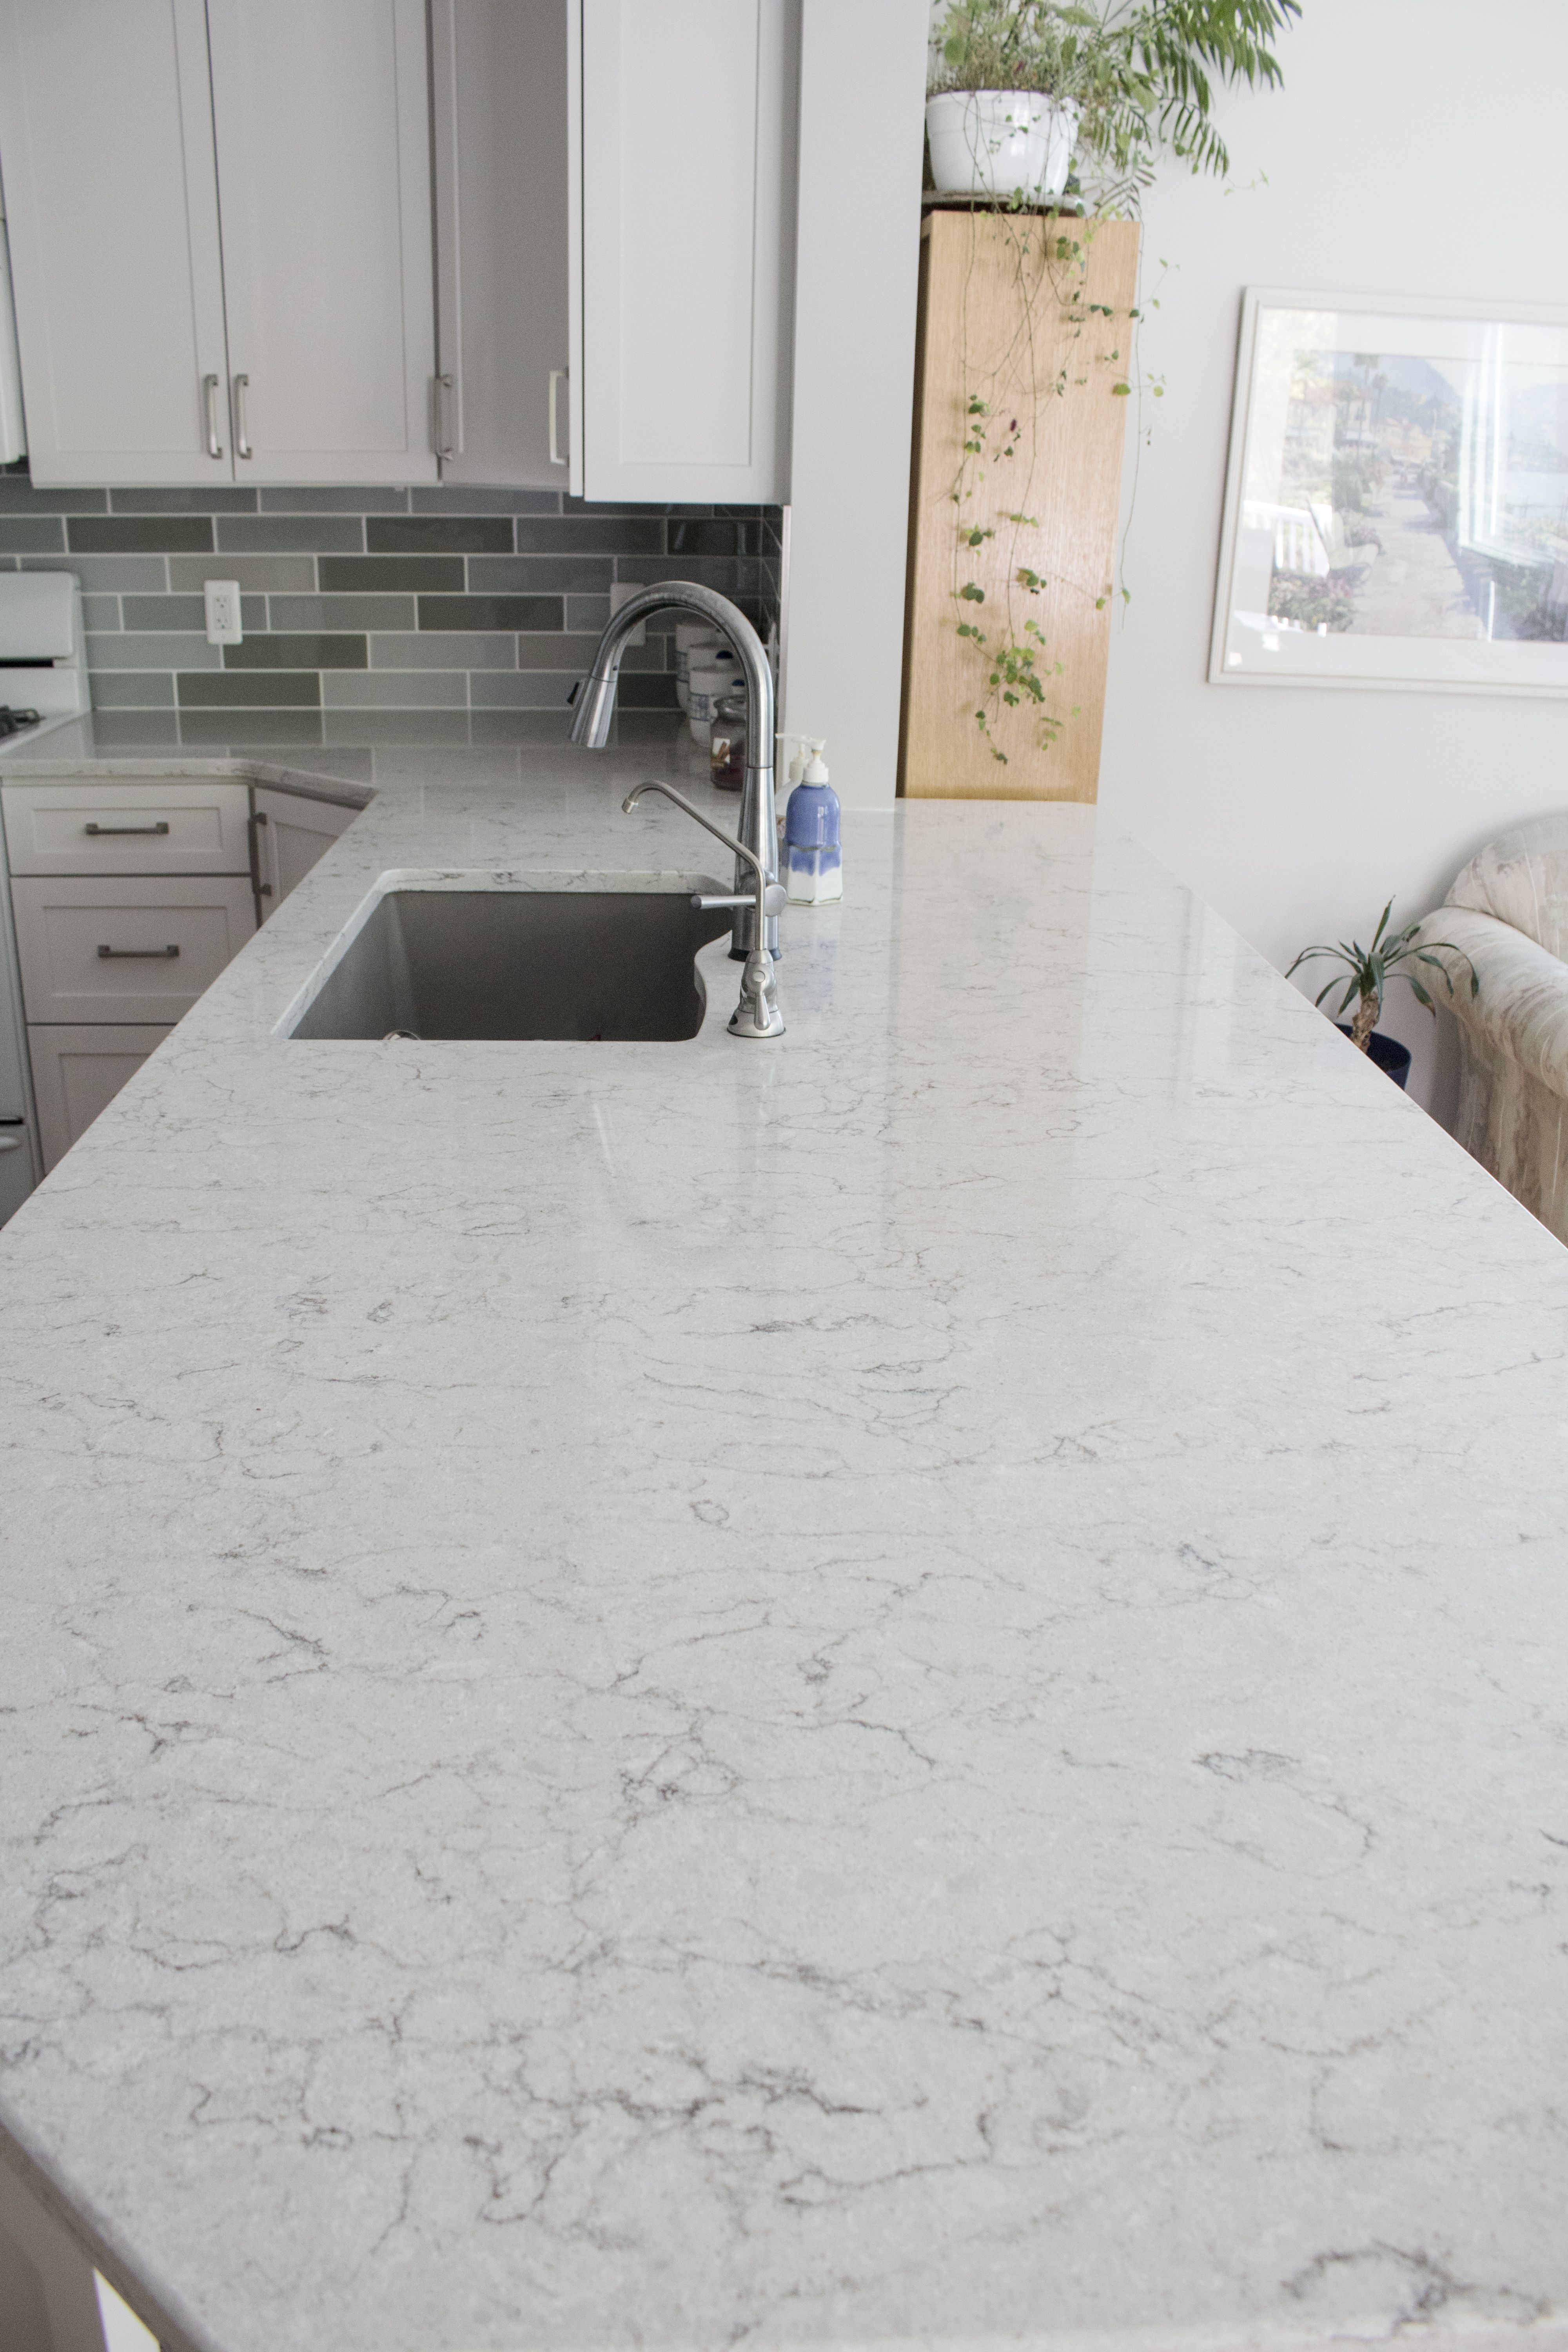 Quartz Countertops Are The Best Choice For Any Size Kitchen Design